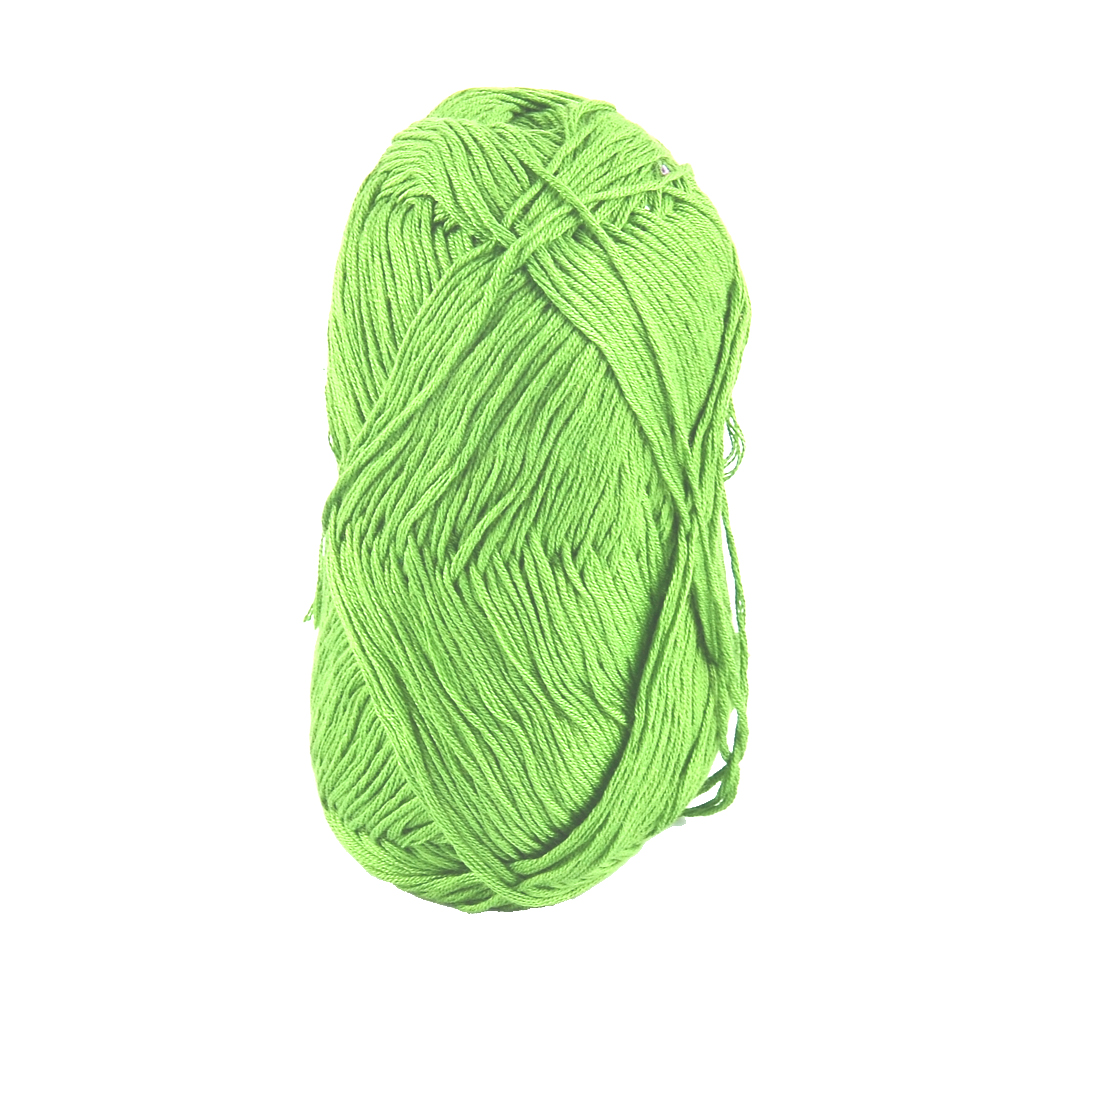 Cotton Hand DIY Knitting Clothes Hat Sweater Crochet Thread 50 Gram Lime Green